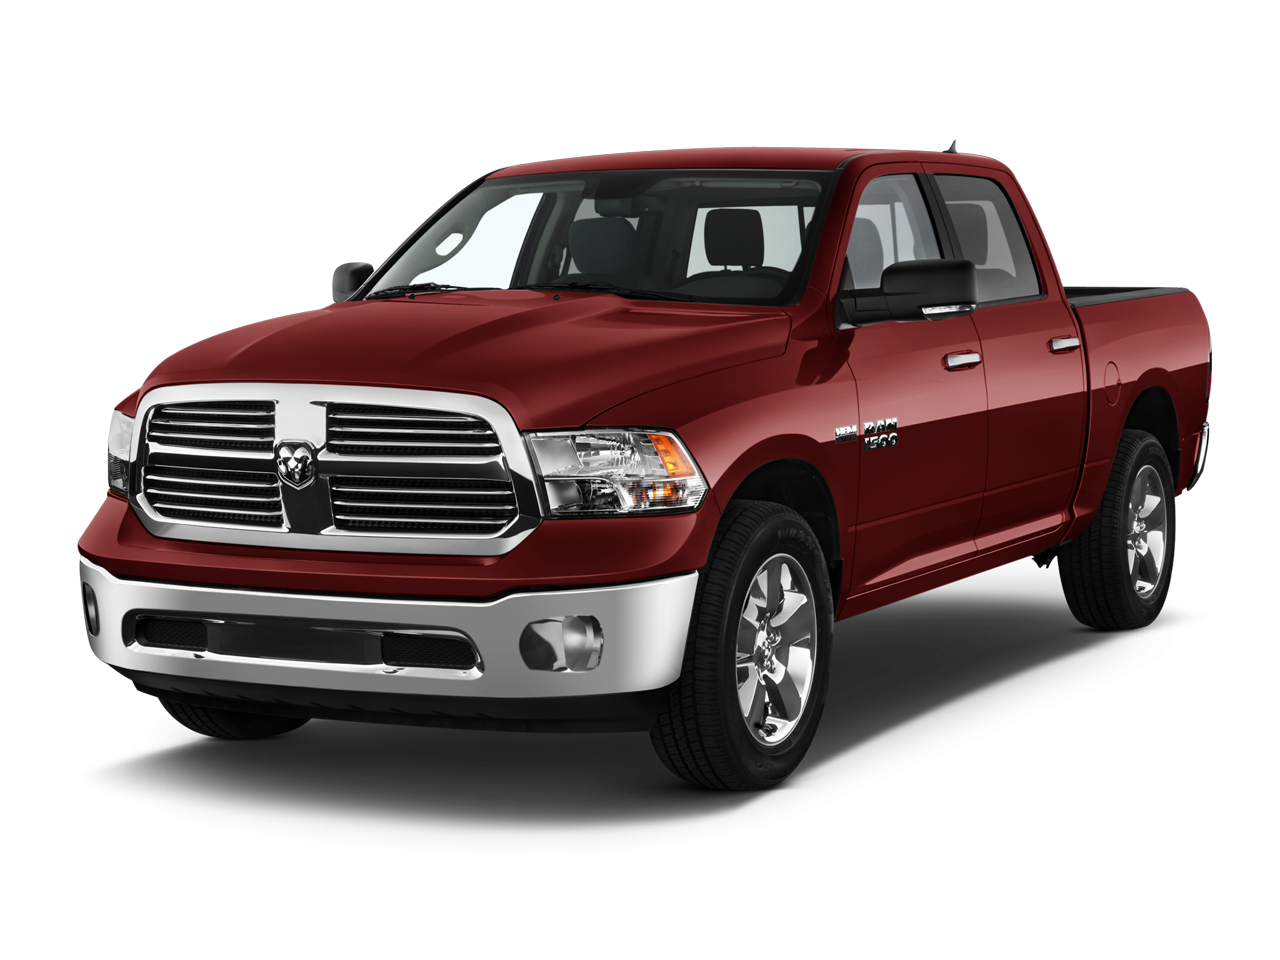 new 2017 ram 1500 slt near oskaloosa ia pat clemons inc. Black Bedroom Furniture Sets. Home Design Ideas